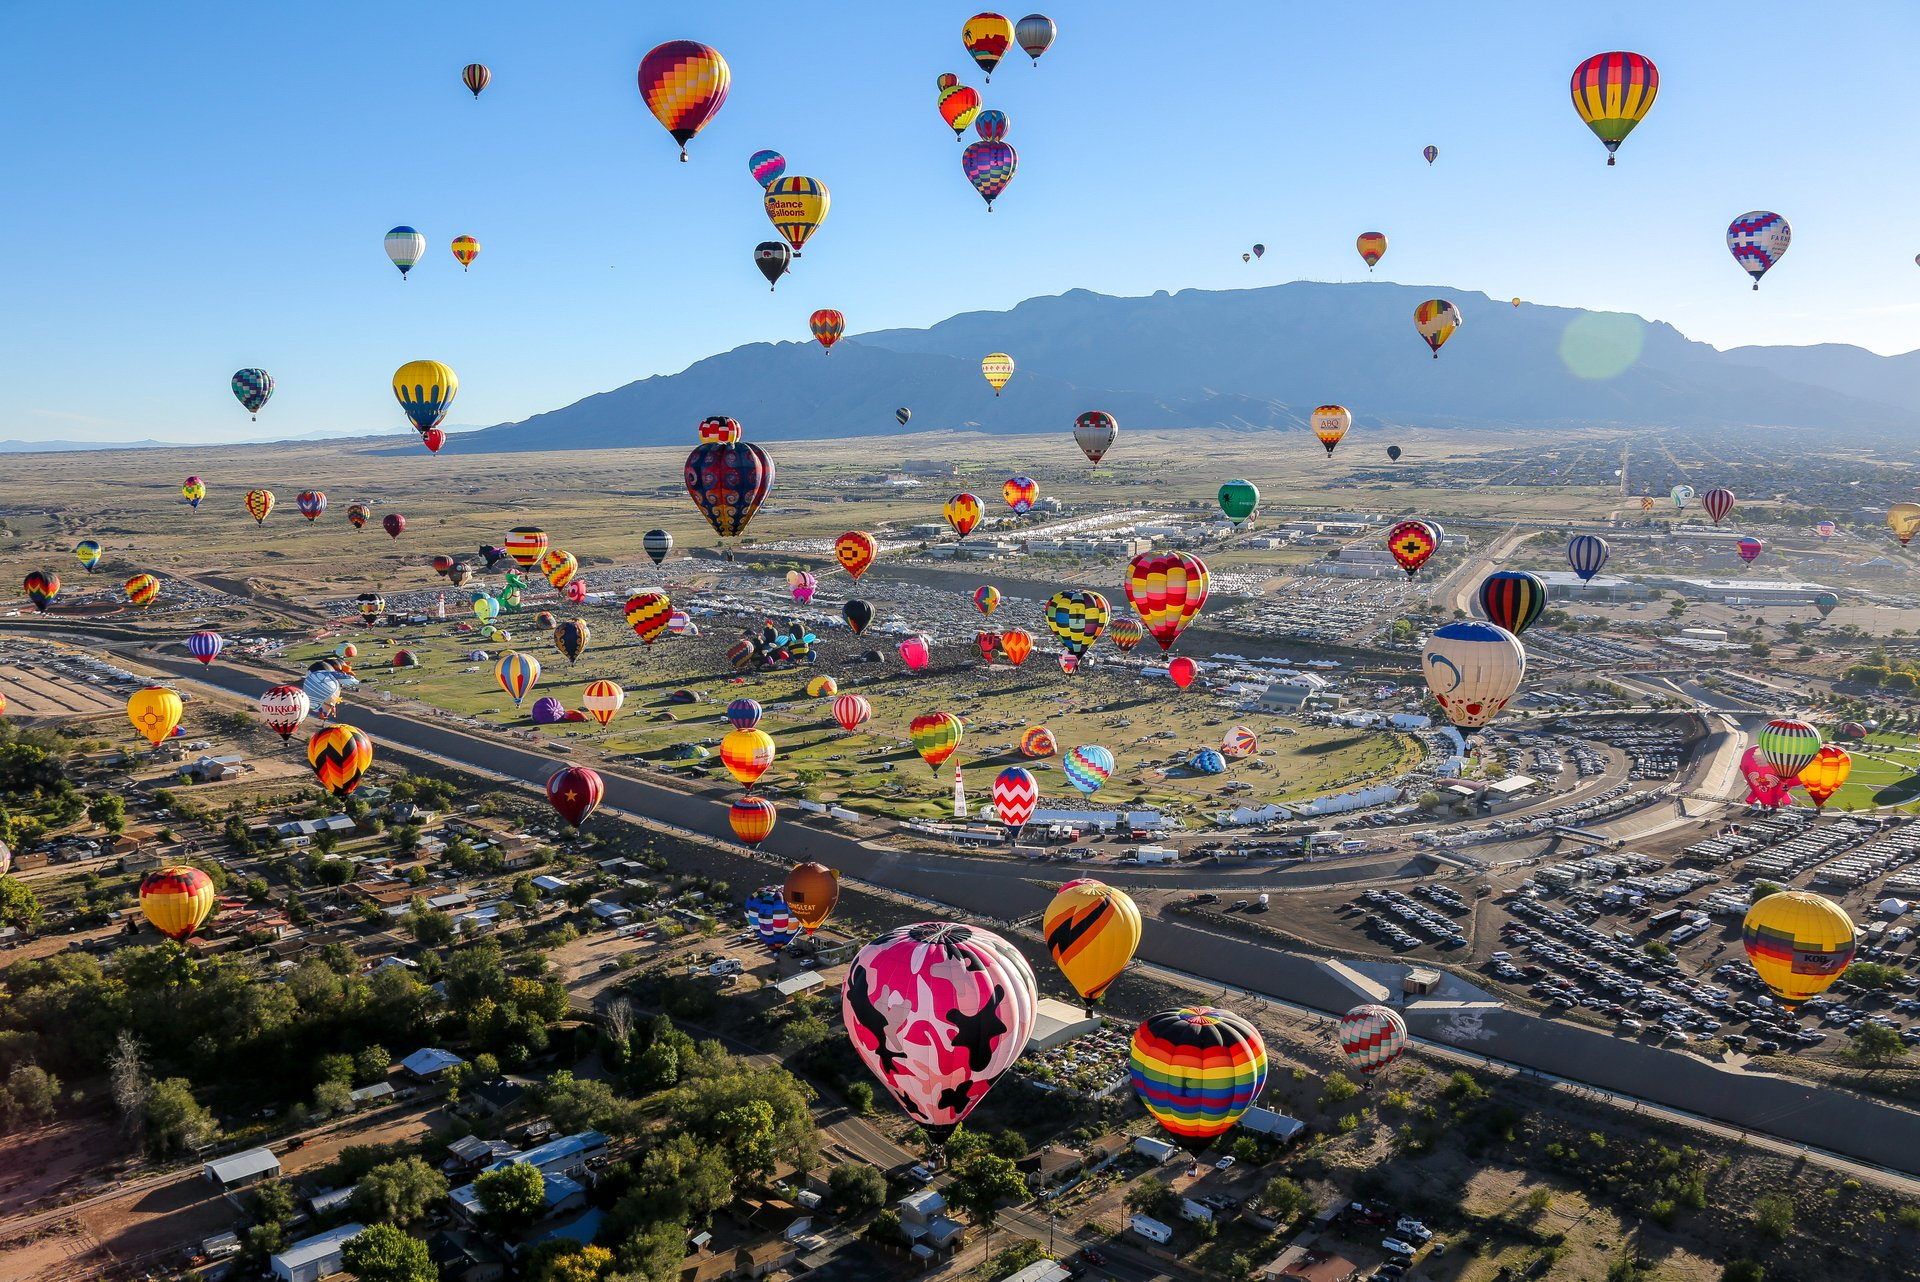 Photos of airborne balloons